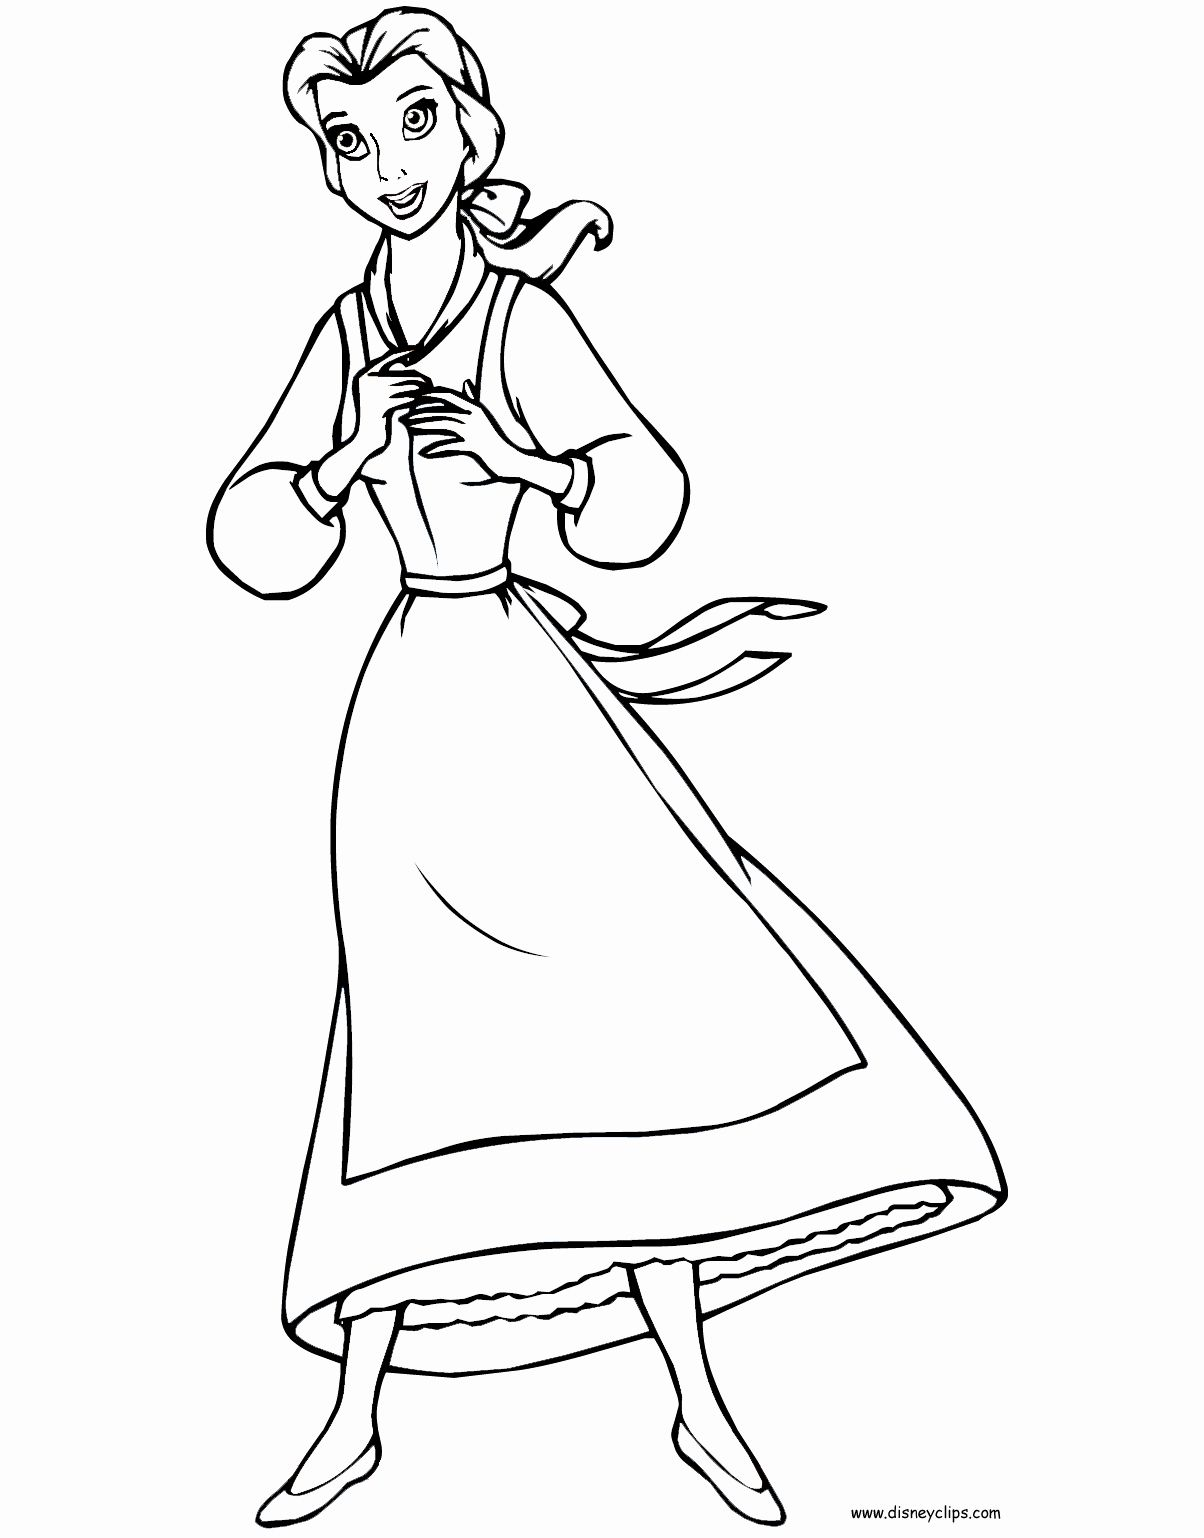 Beauty And The Beast Coloring Book New Beauty And The Beast Printable Coloring Pages 2